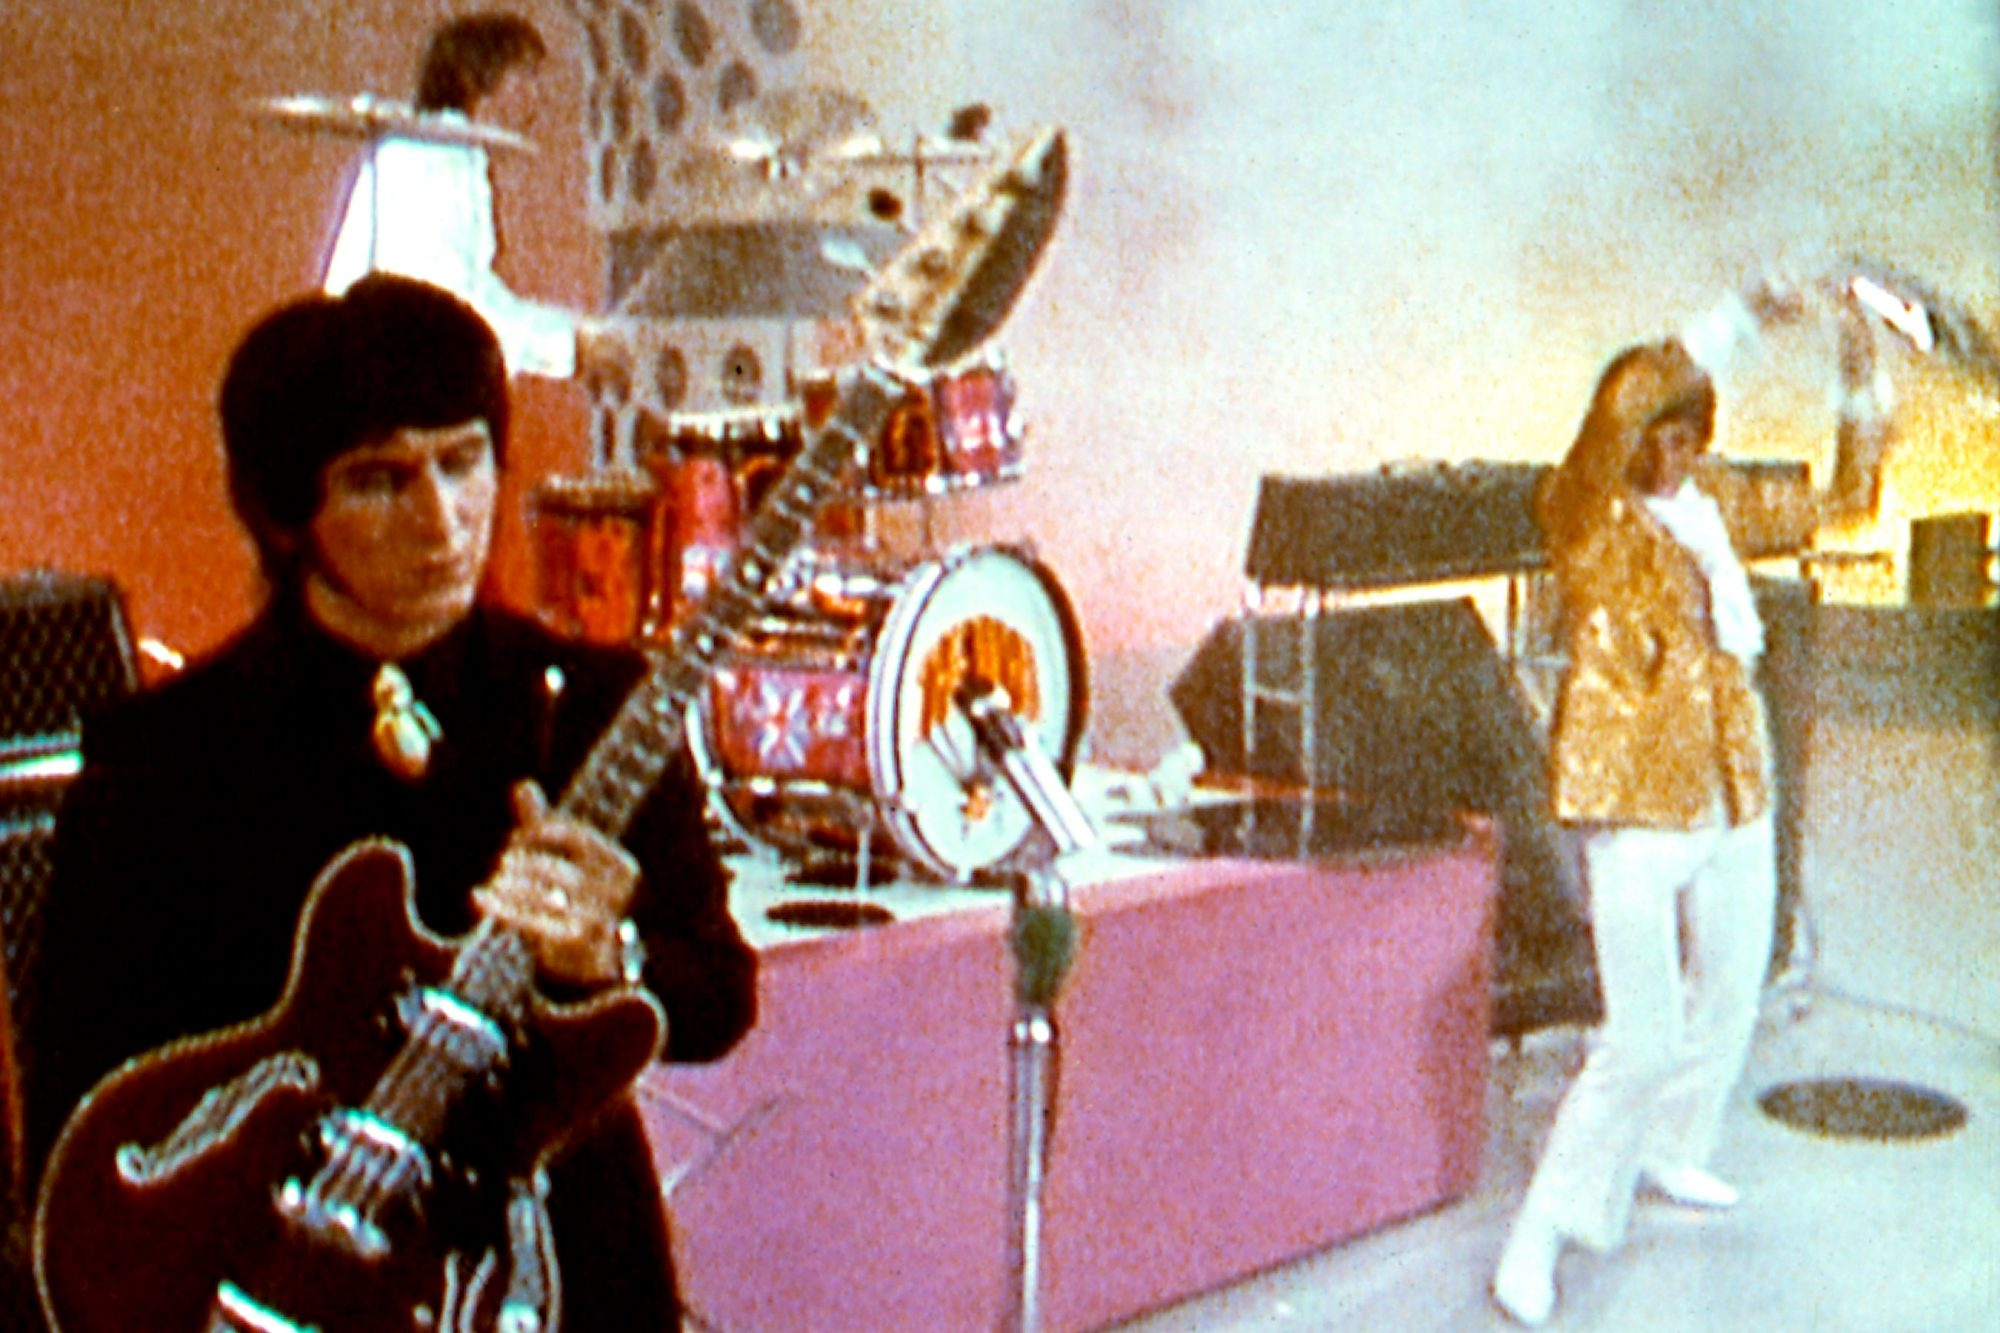 THE KIDS ARE ALRIGHT, The Who circa 1967, on the Smothers Brothers Show, L-R, John Entwistle, Keith